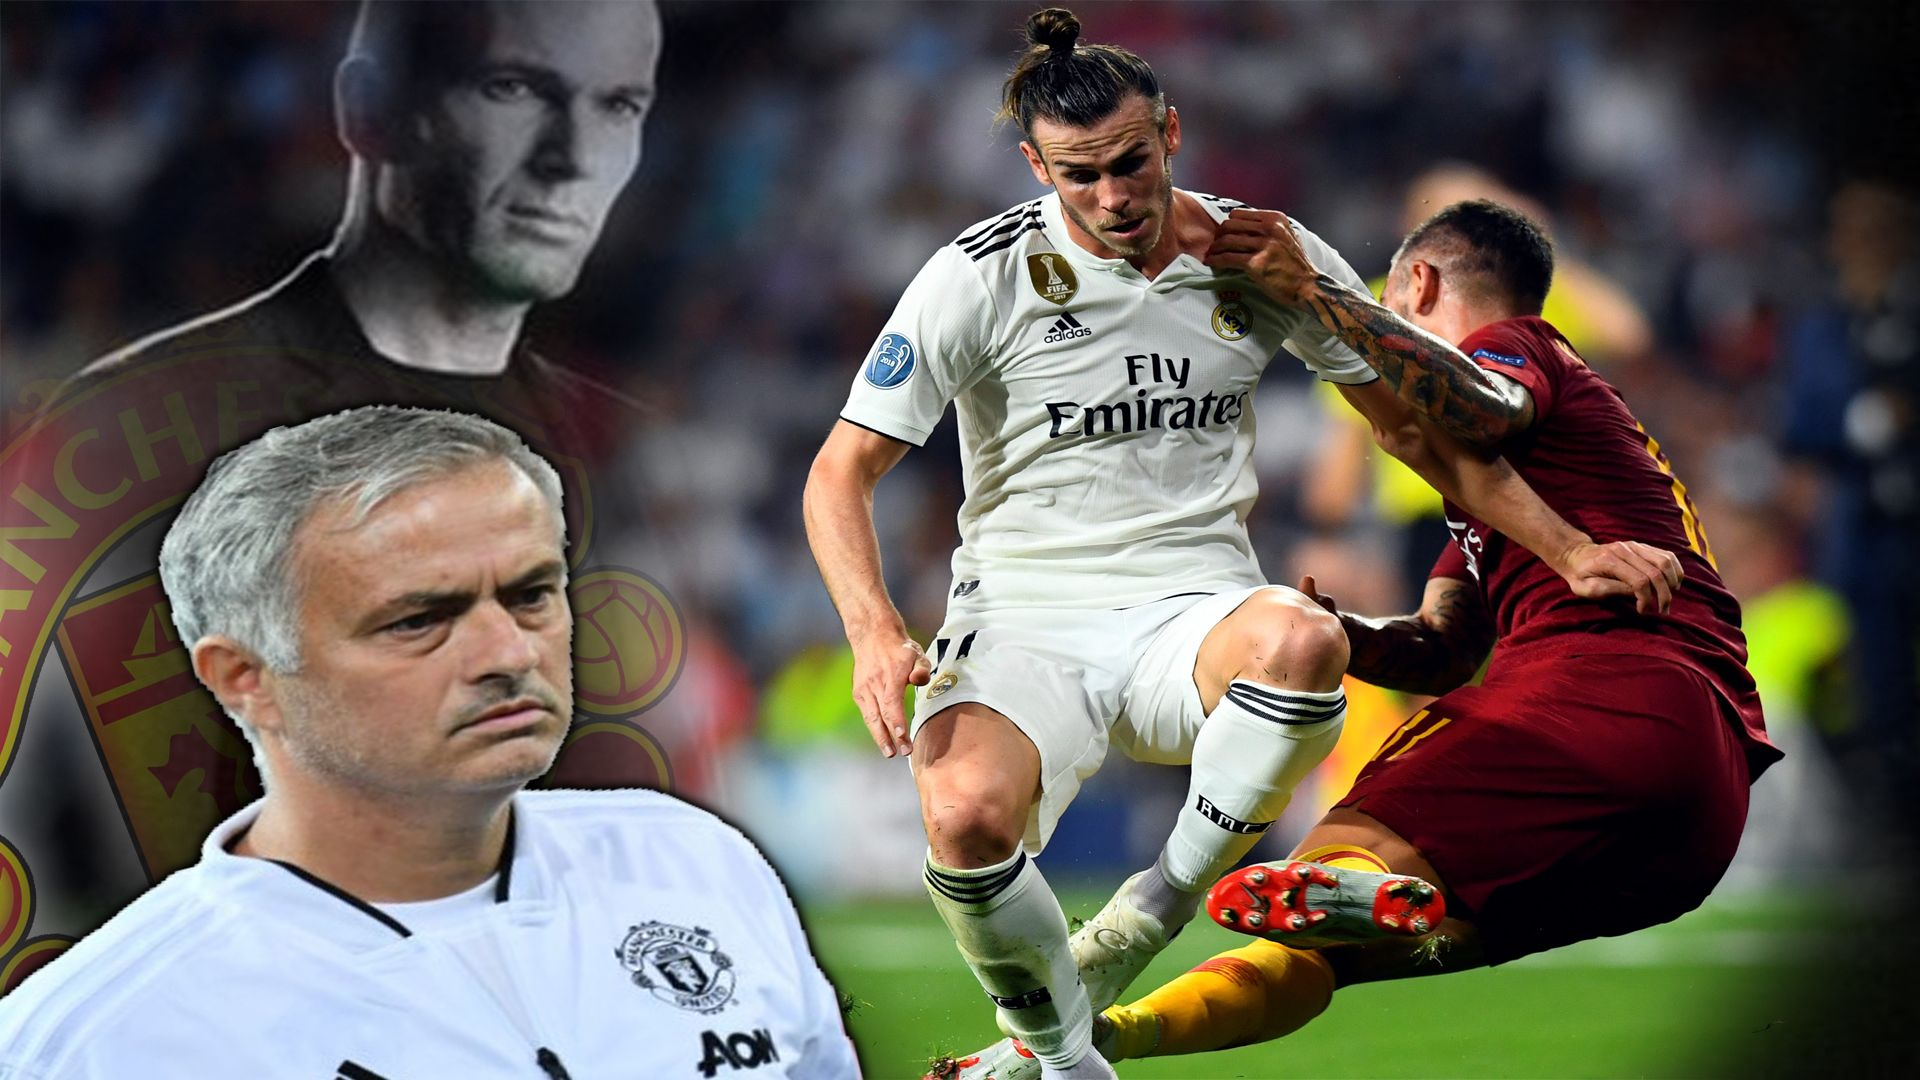 Gareth Bale To Remain At Real Madrid Amid Transfer Links To Mufc Transfer News Today Sky Sports Real Madrid Bale Transfer News Gareth Bale Sports